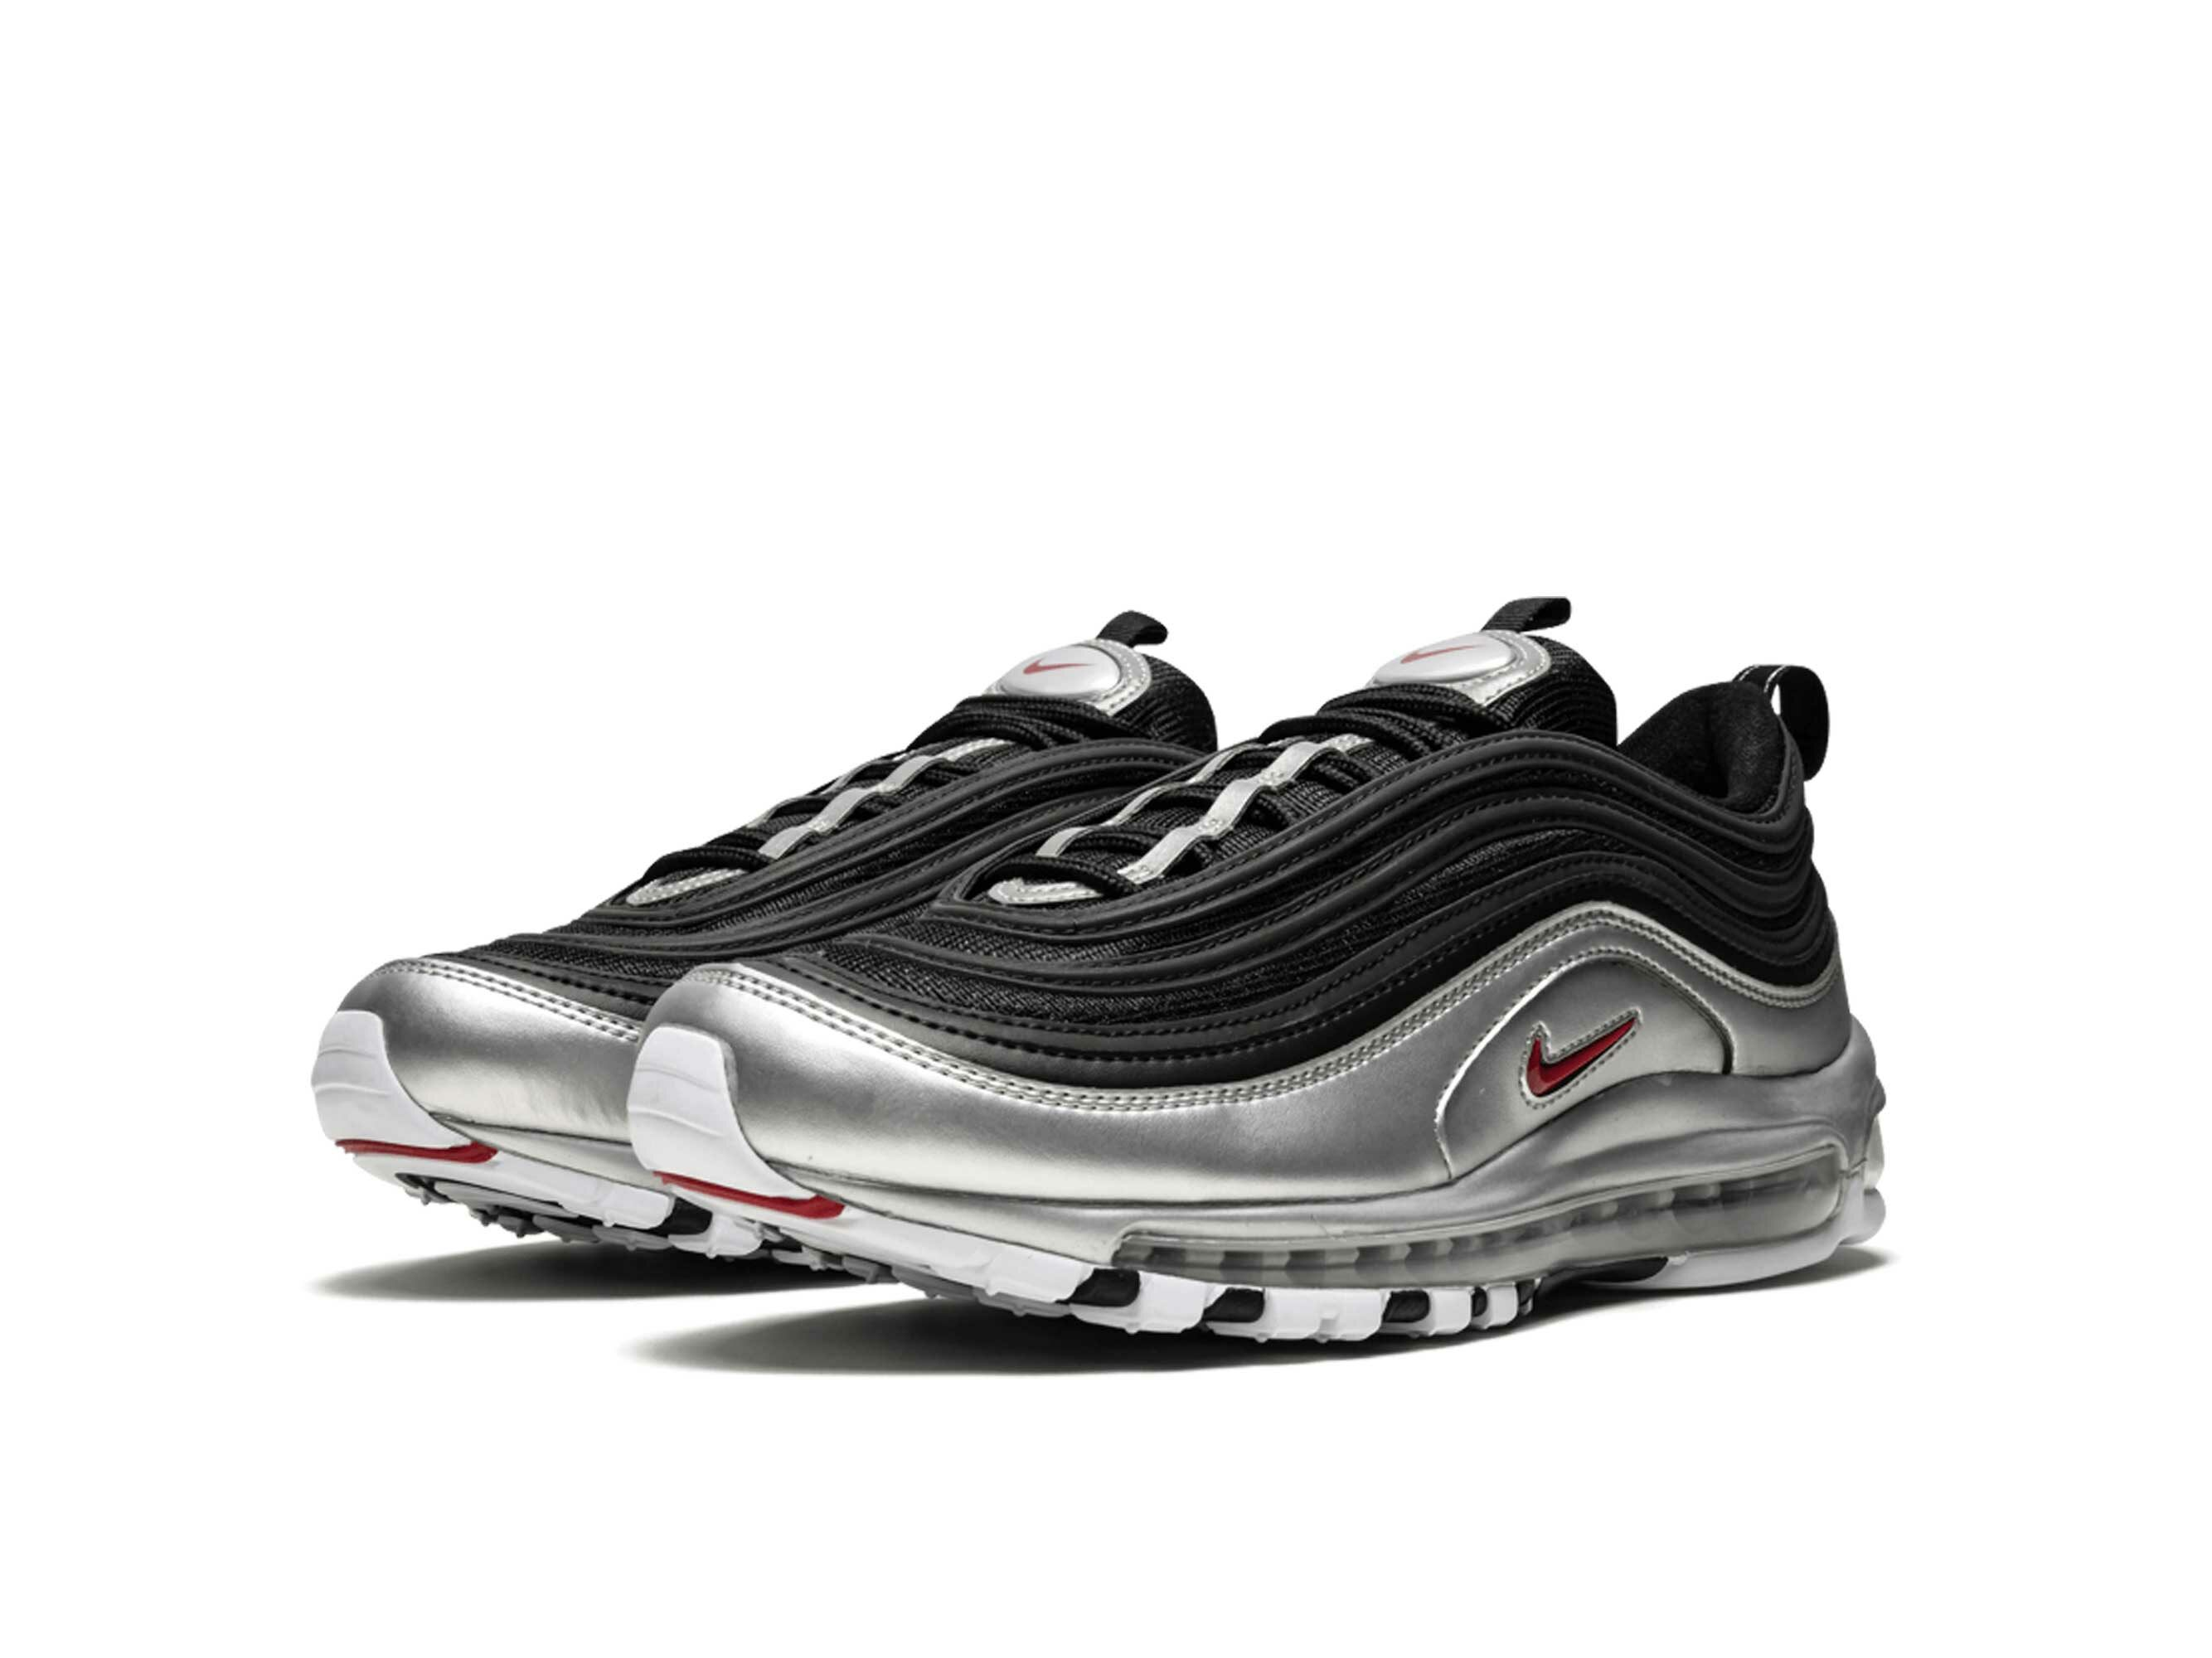 nike air max 97 black metallic silver AT5458_001 купить